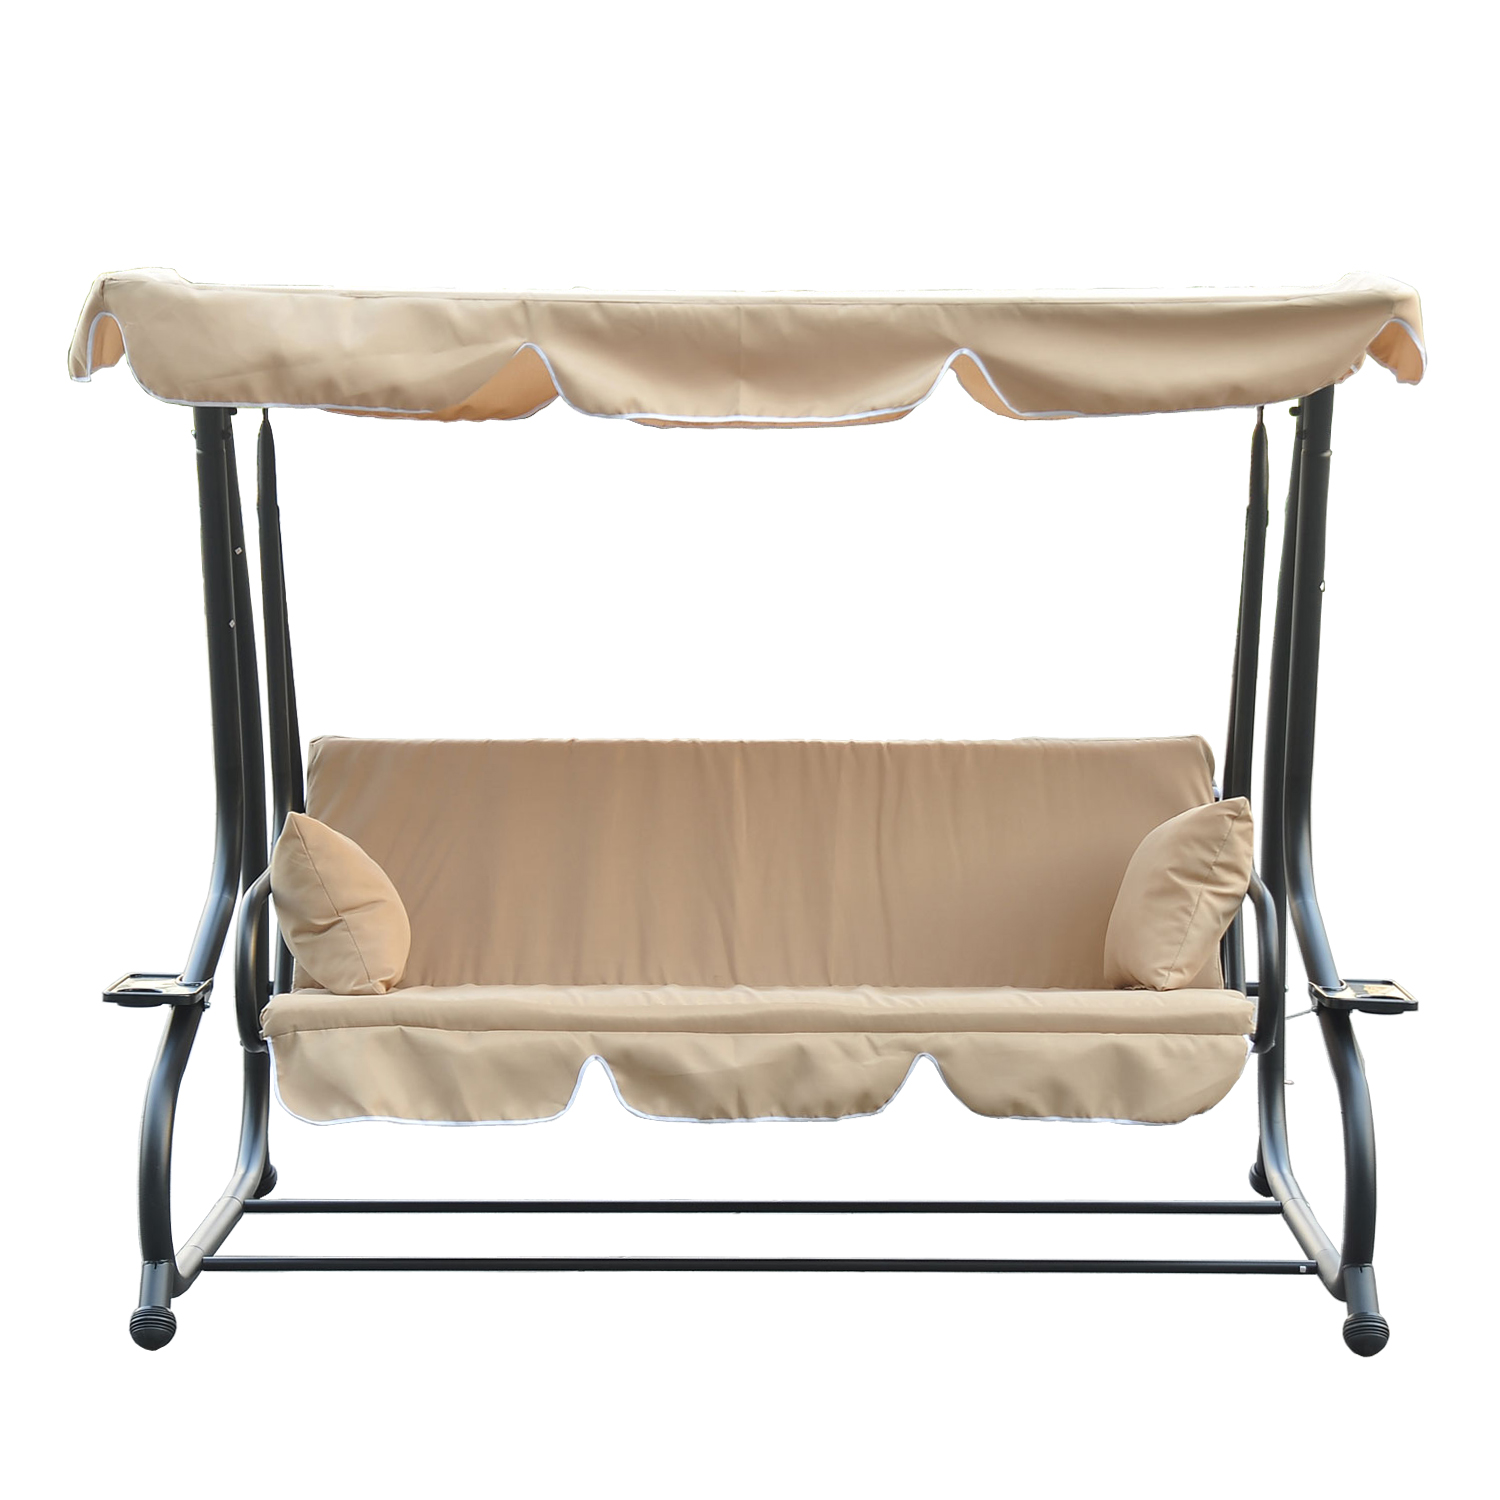 Outsunny Covered Outdoor Porch Swing / Bed with Frame - Sand